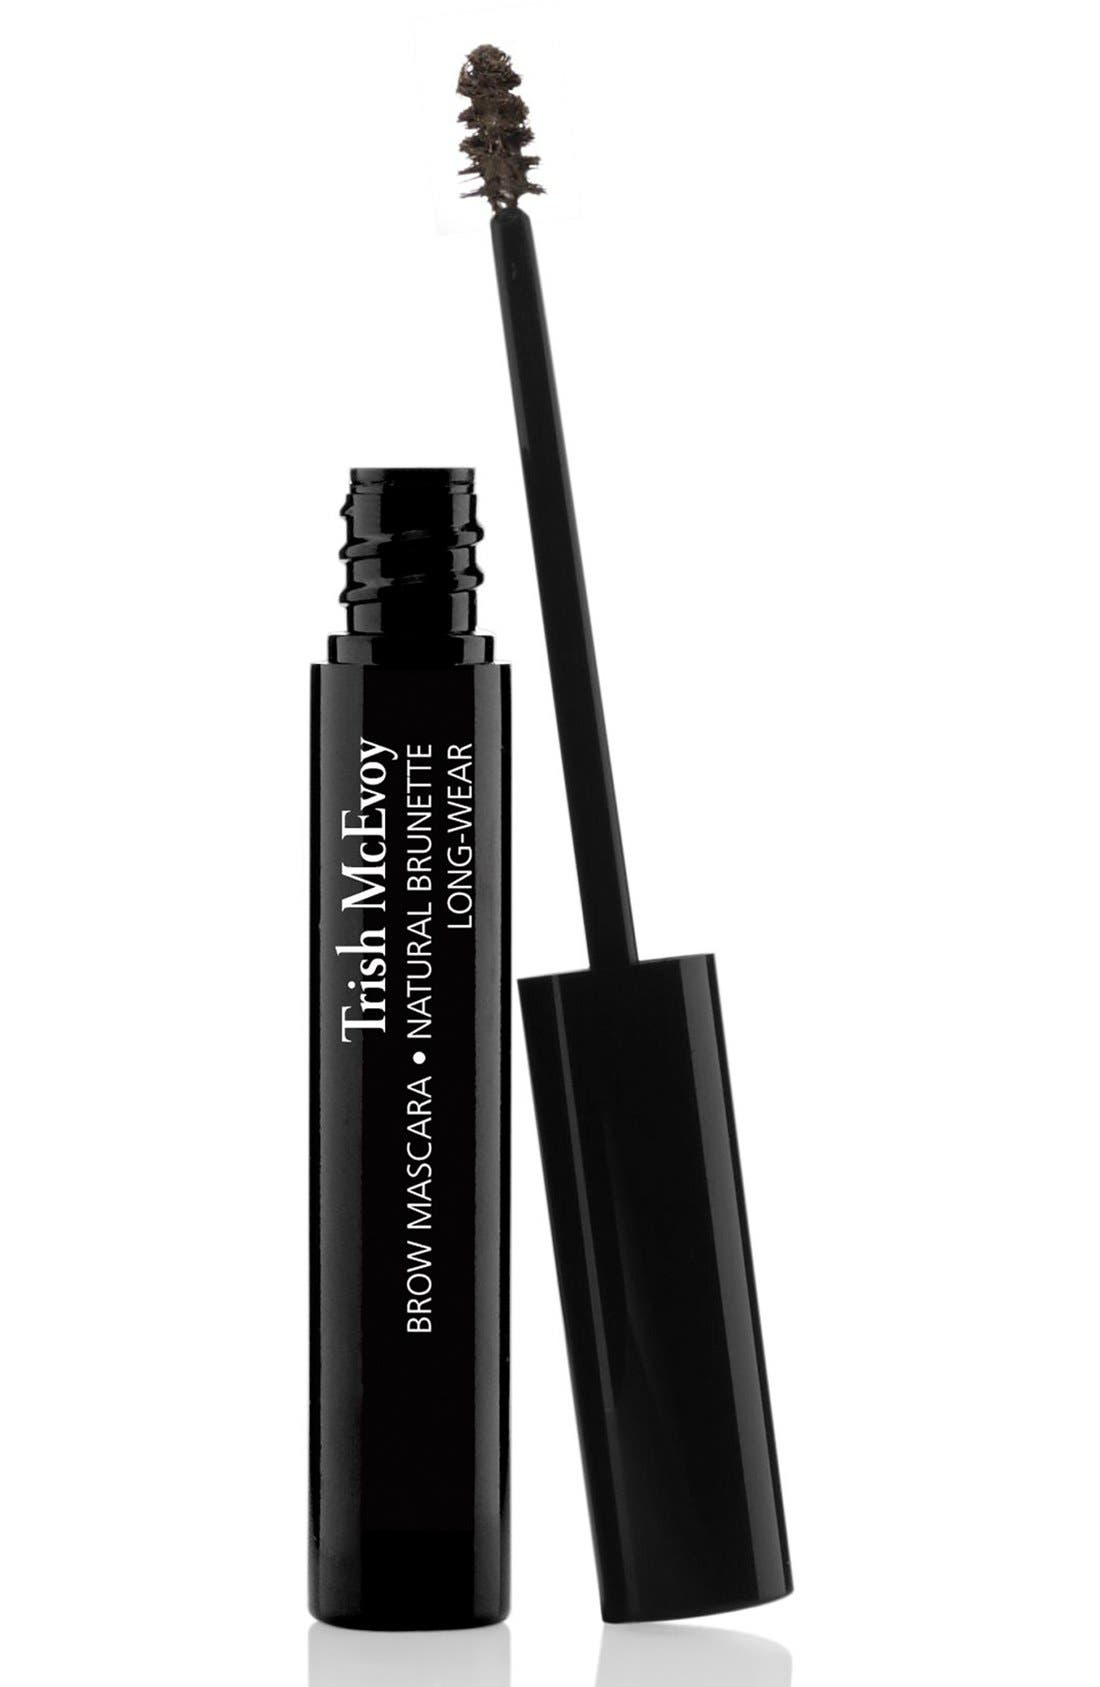 Brow Mascara,                             Main thumbnail 1, color,                             201